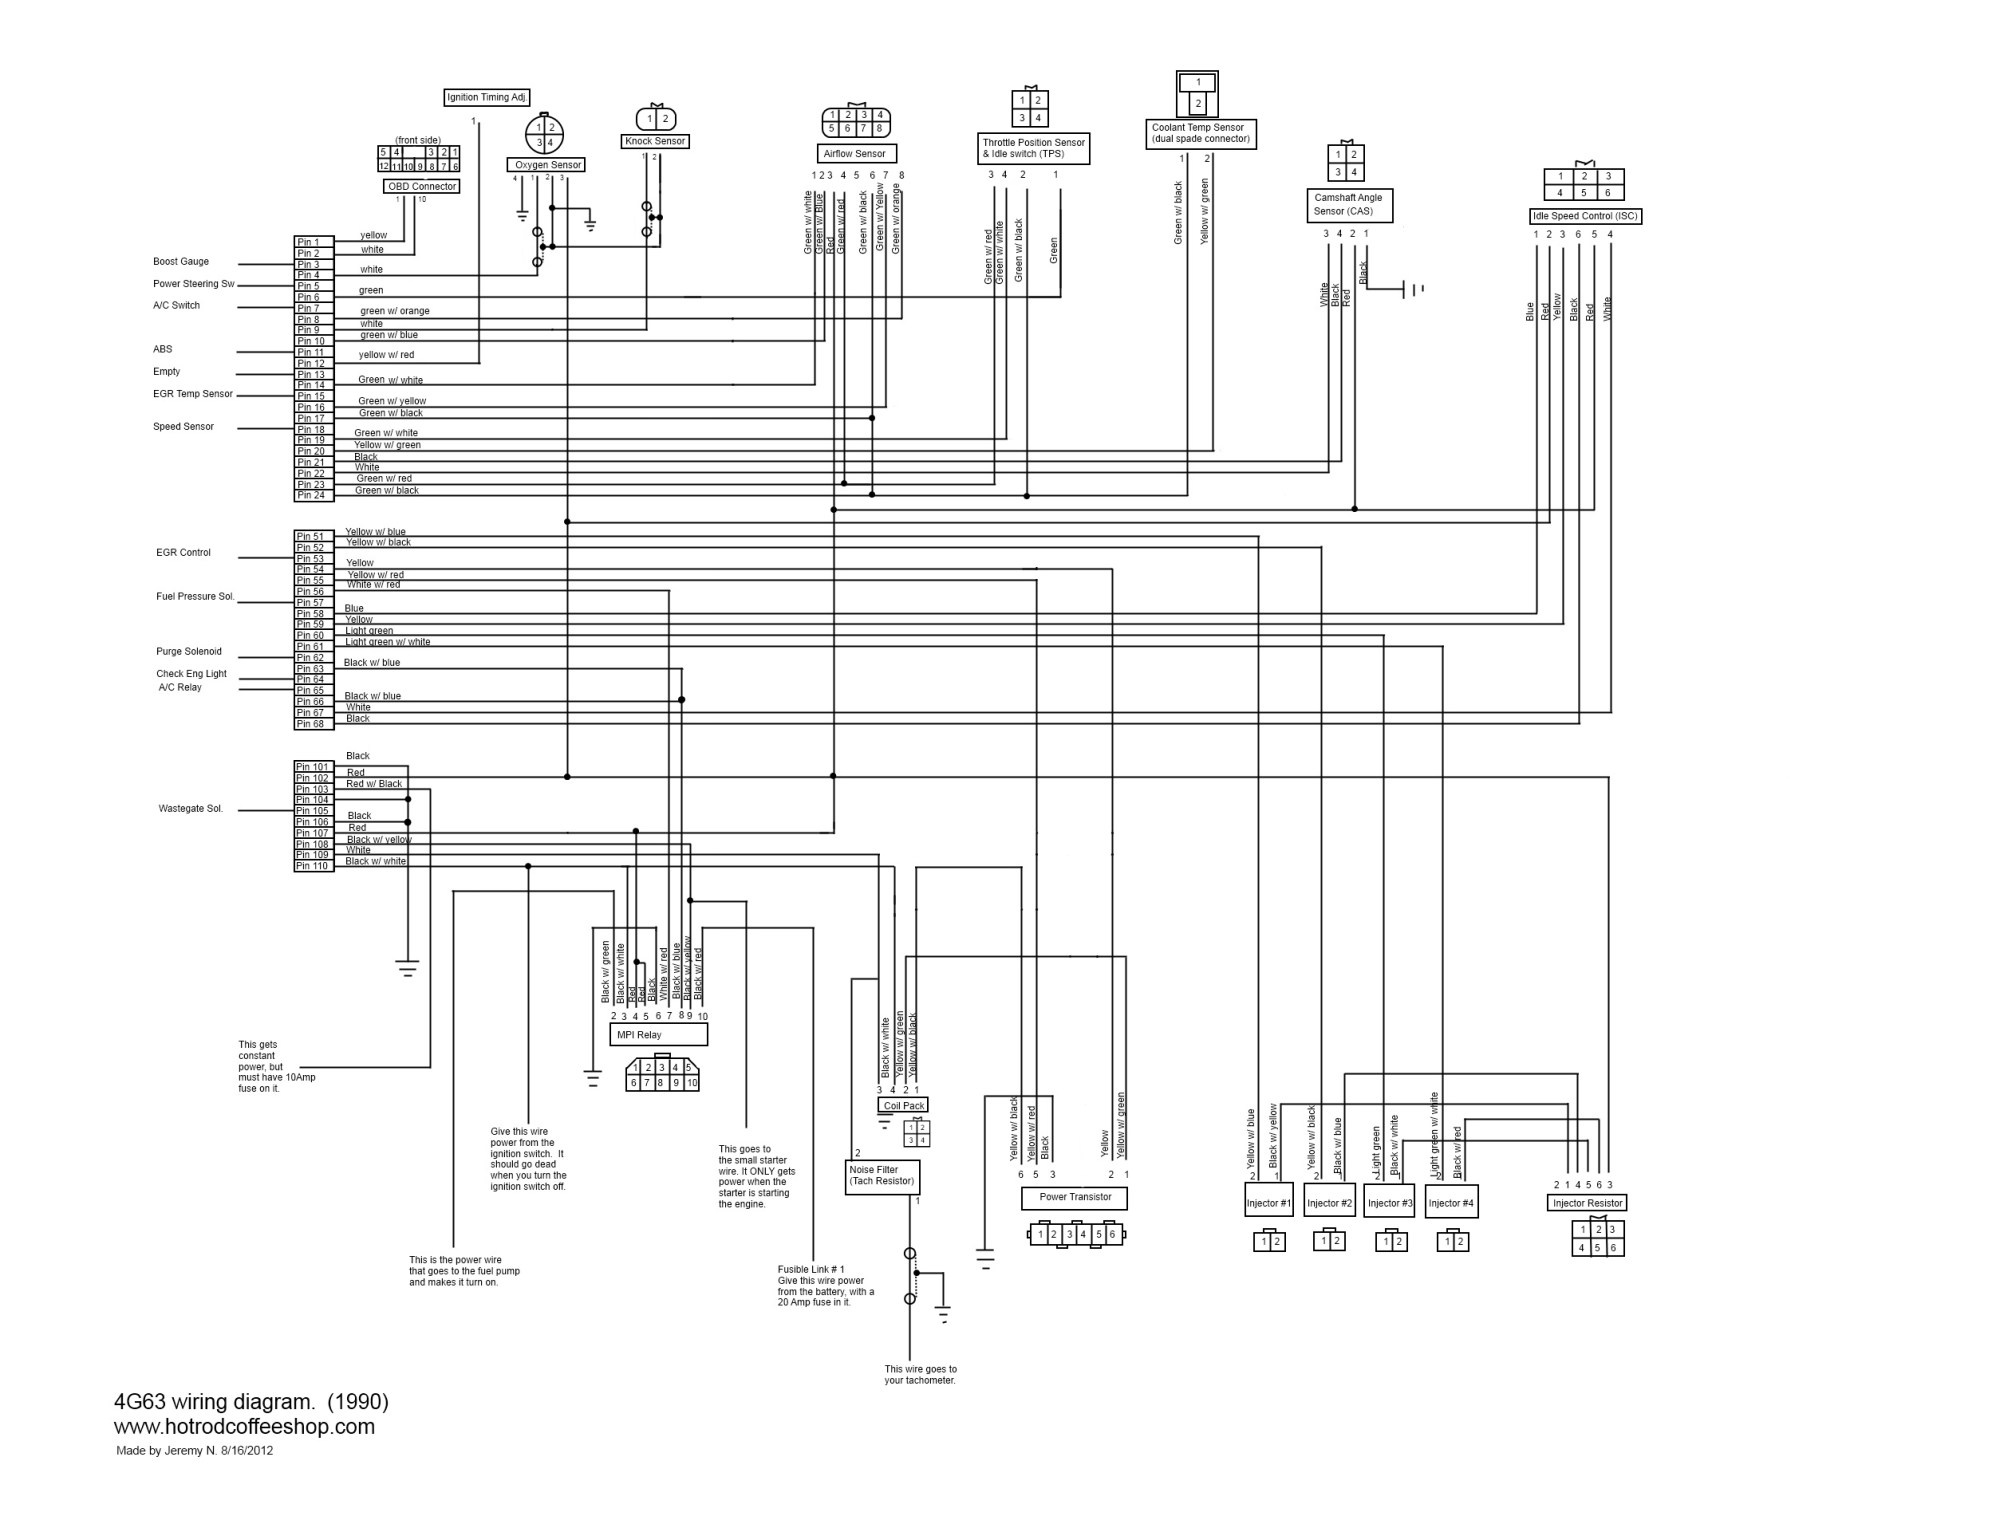 hight resolution of mitsubishi starion wiring diagram wiring diagram show mitsubishi starion engine diagram